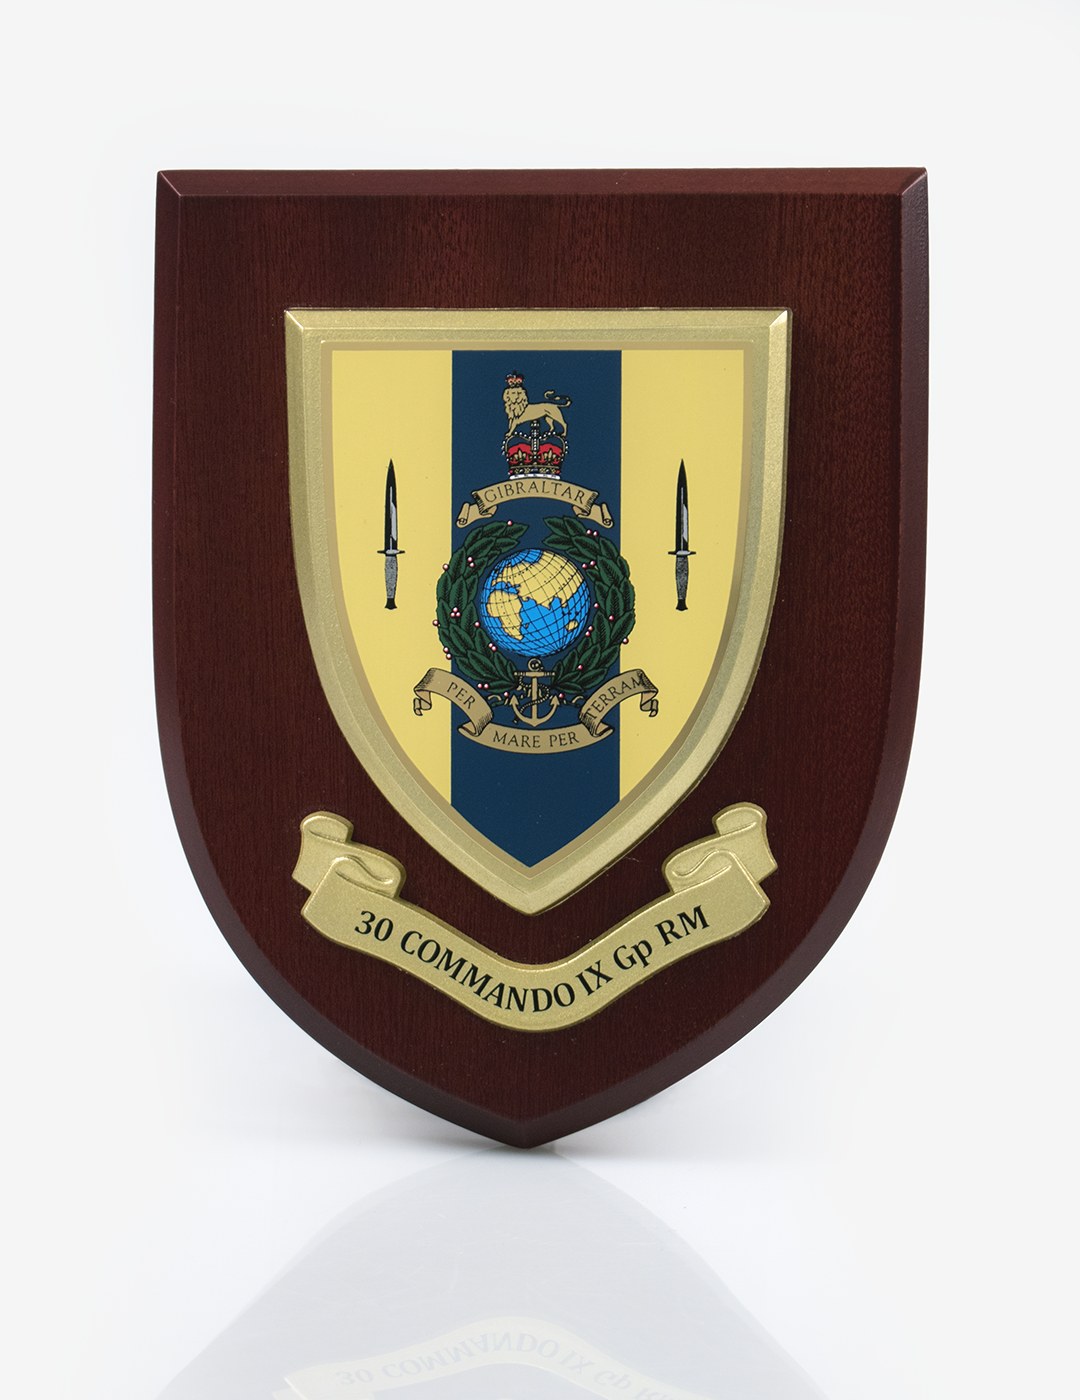 30 Commando IX Group Plaque